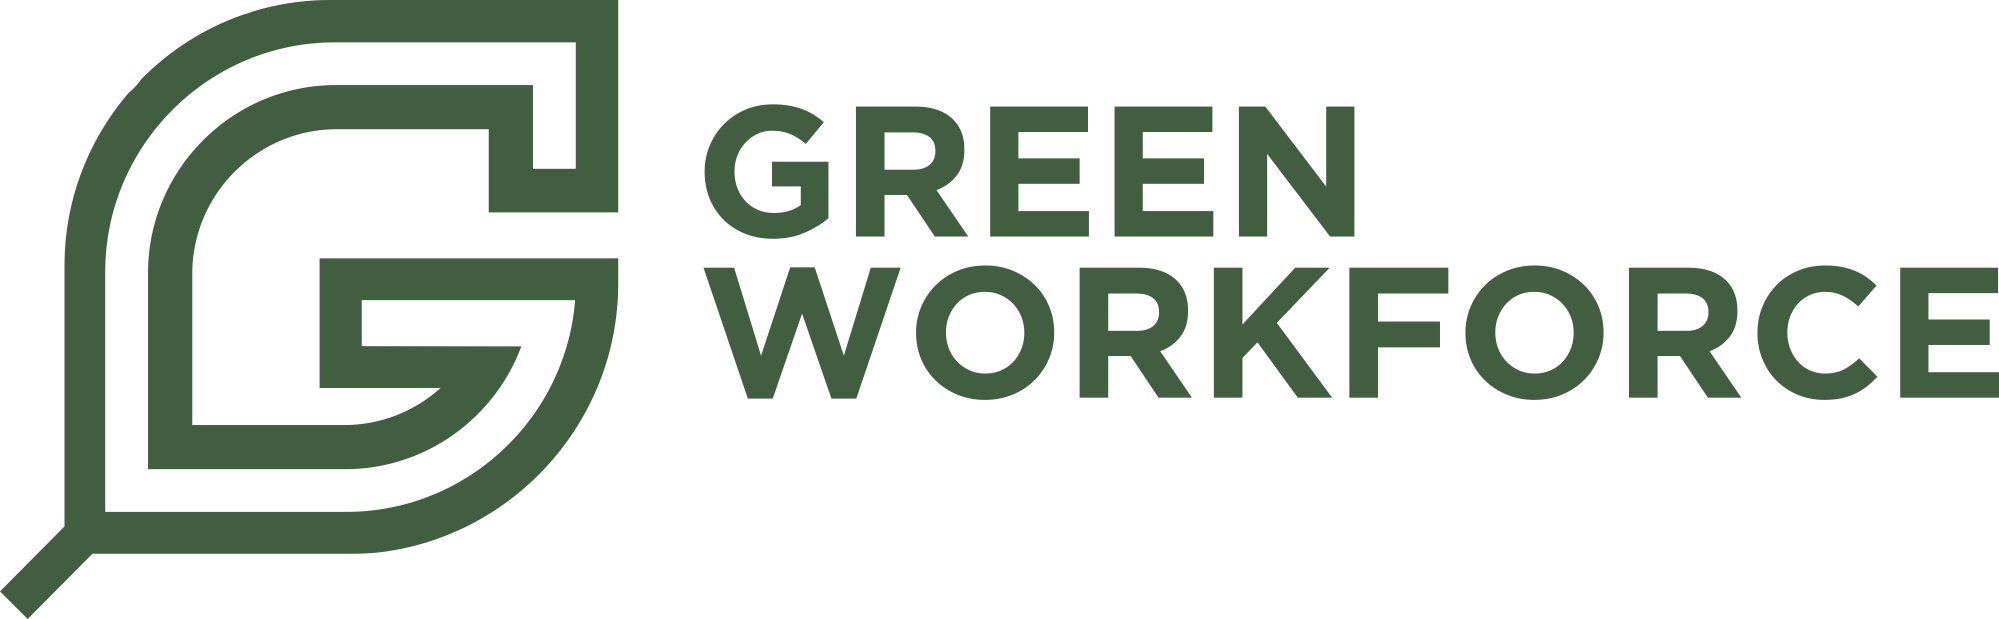 Green Workforce